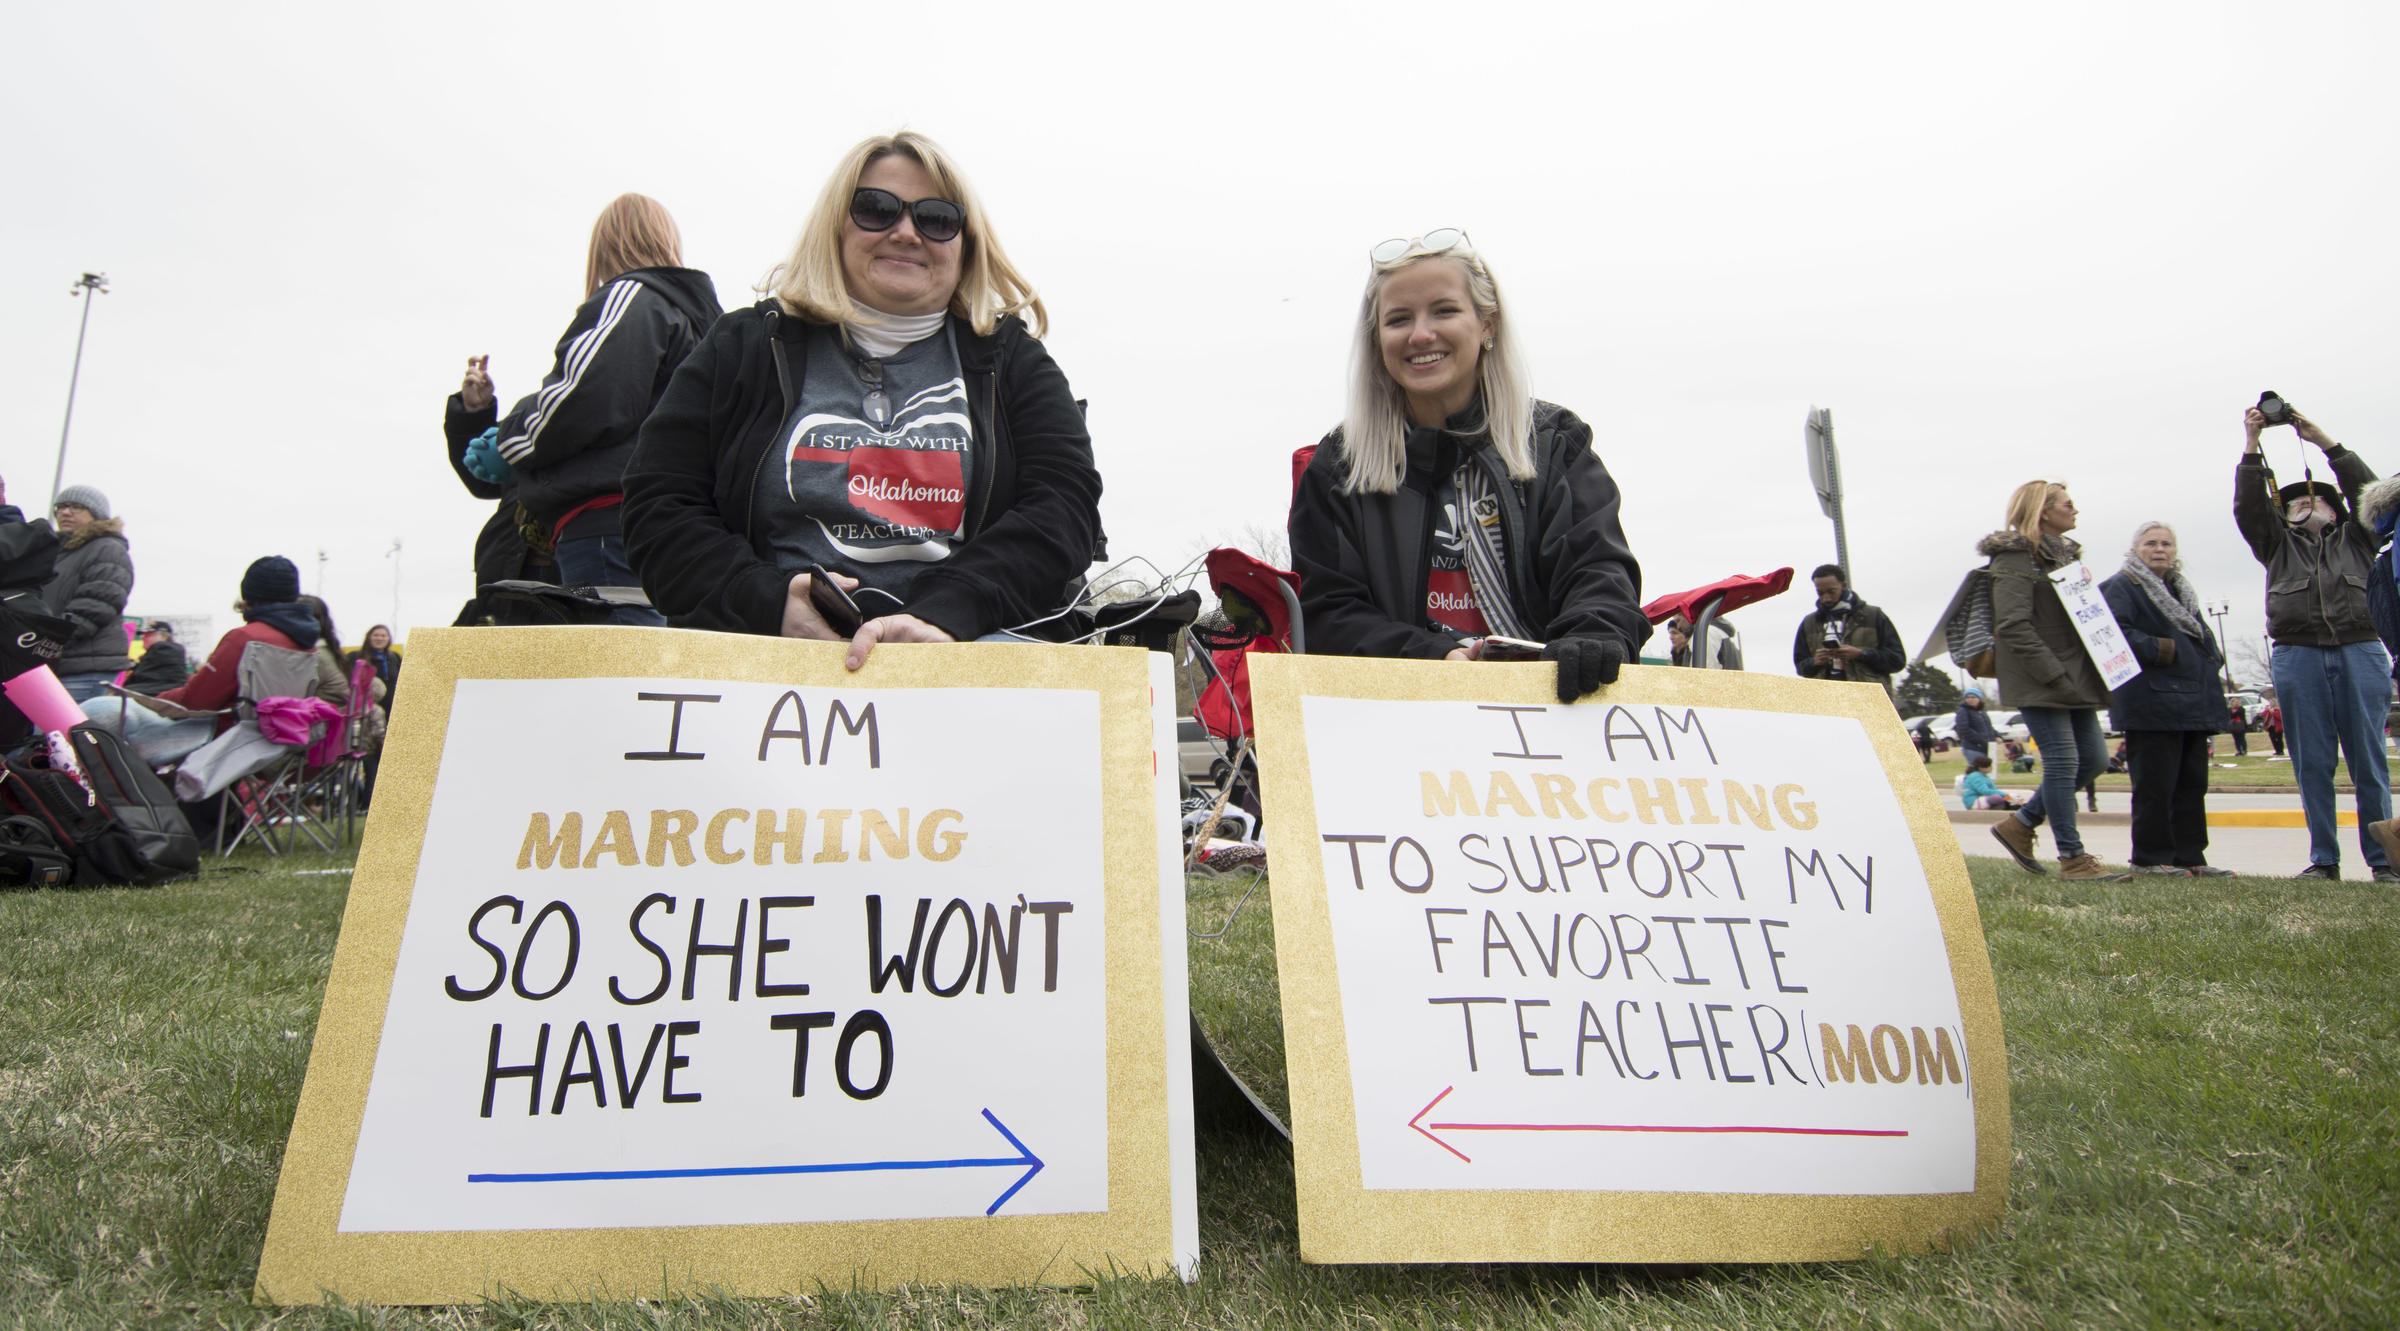 Oklahoma teacher walkout ends, but the fight continues